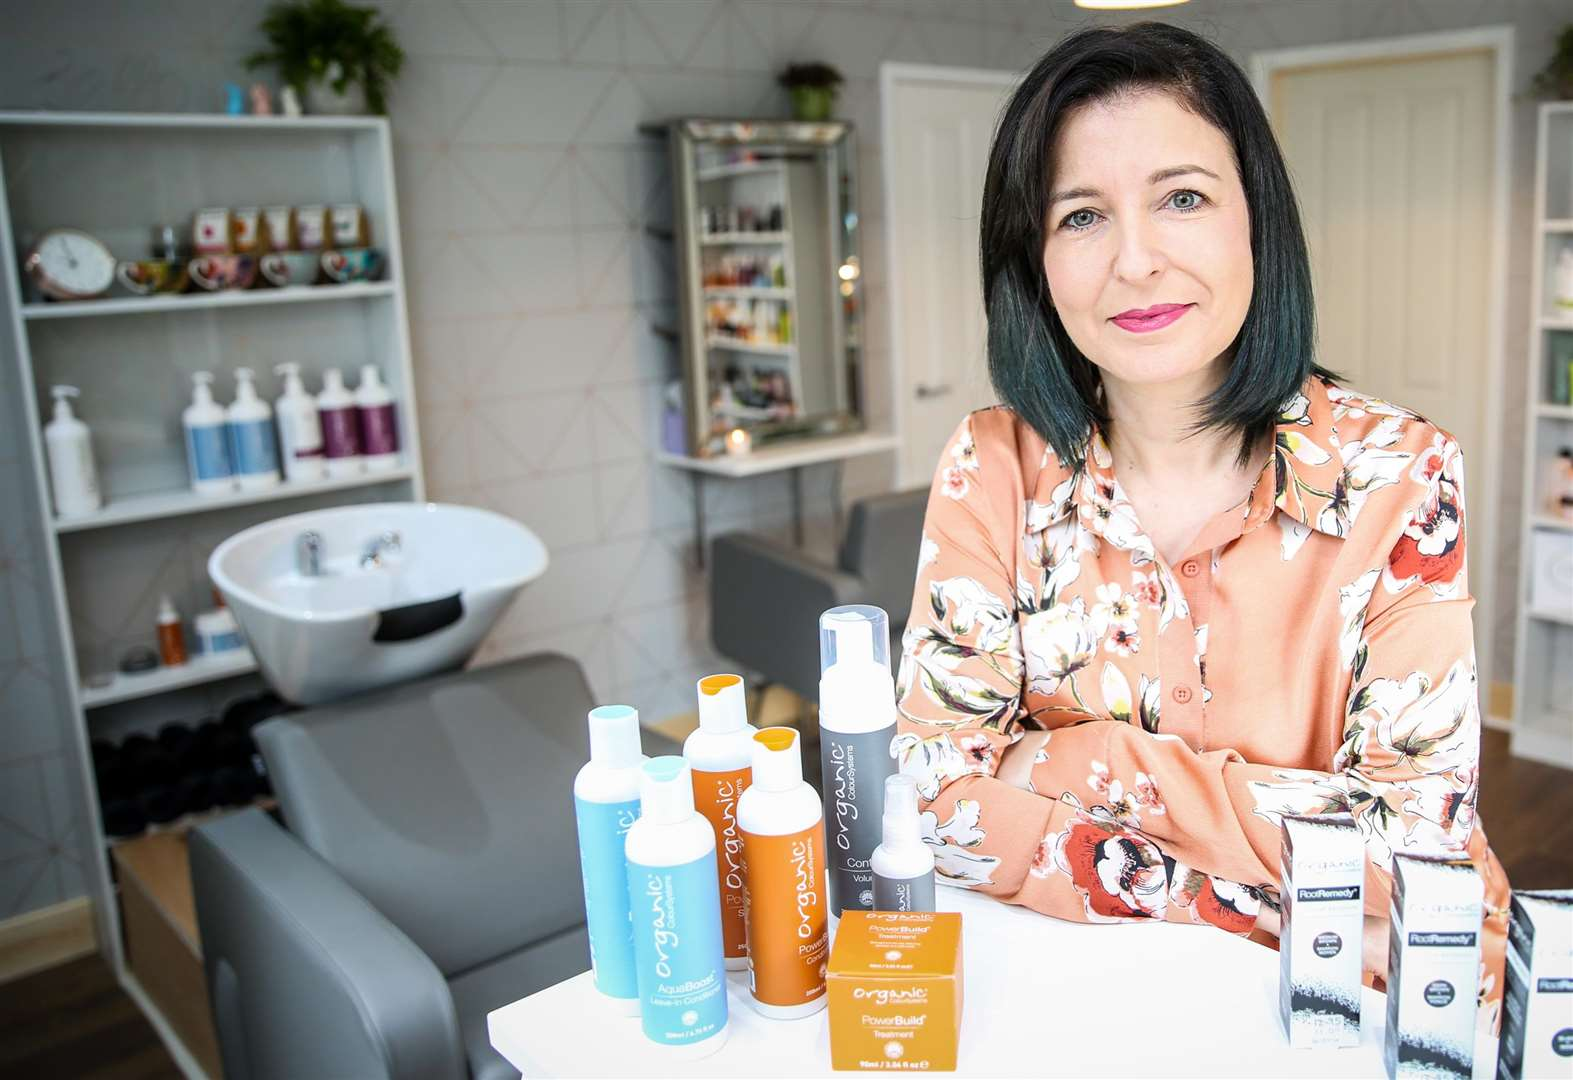 Vegan hair and beauty salon launched